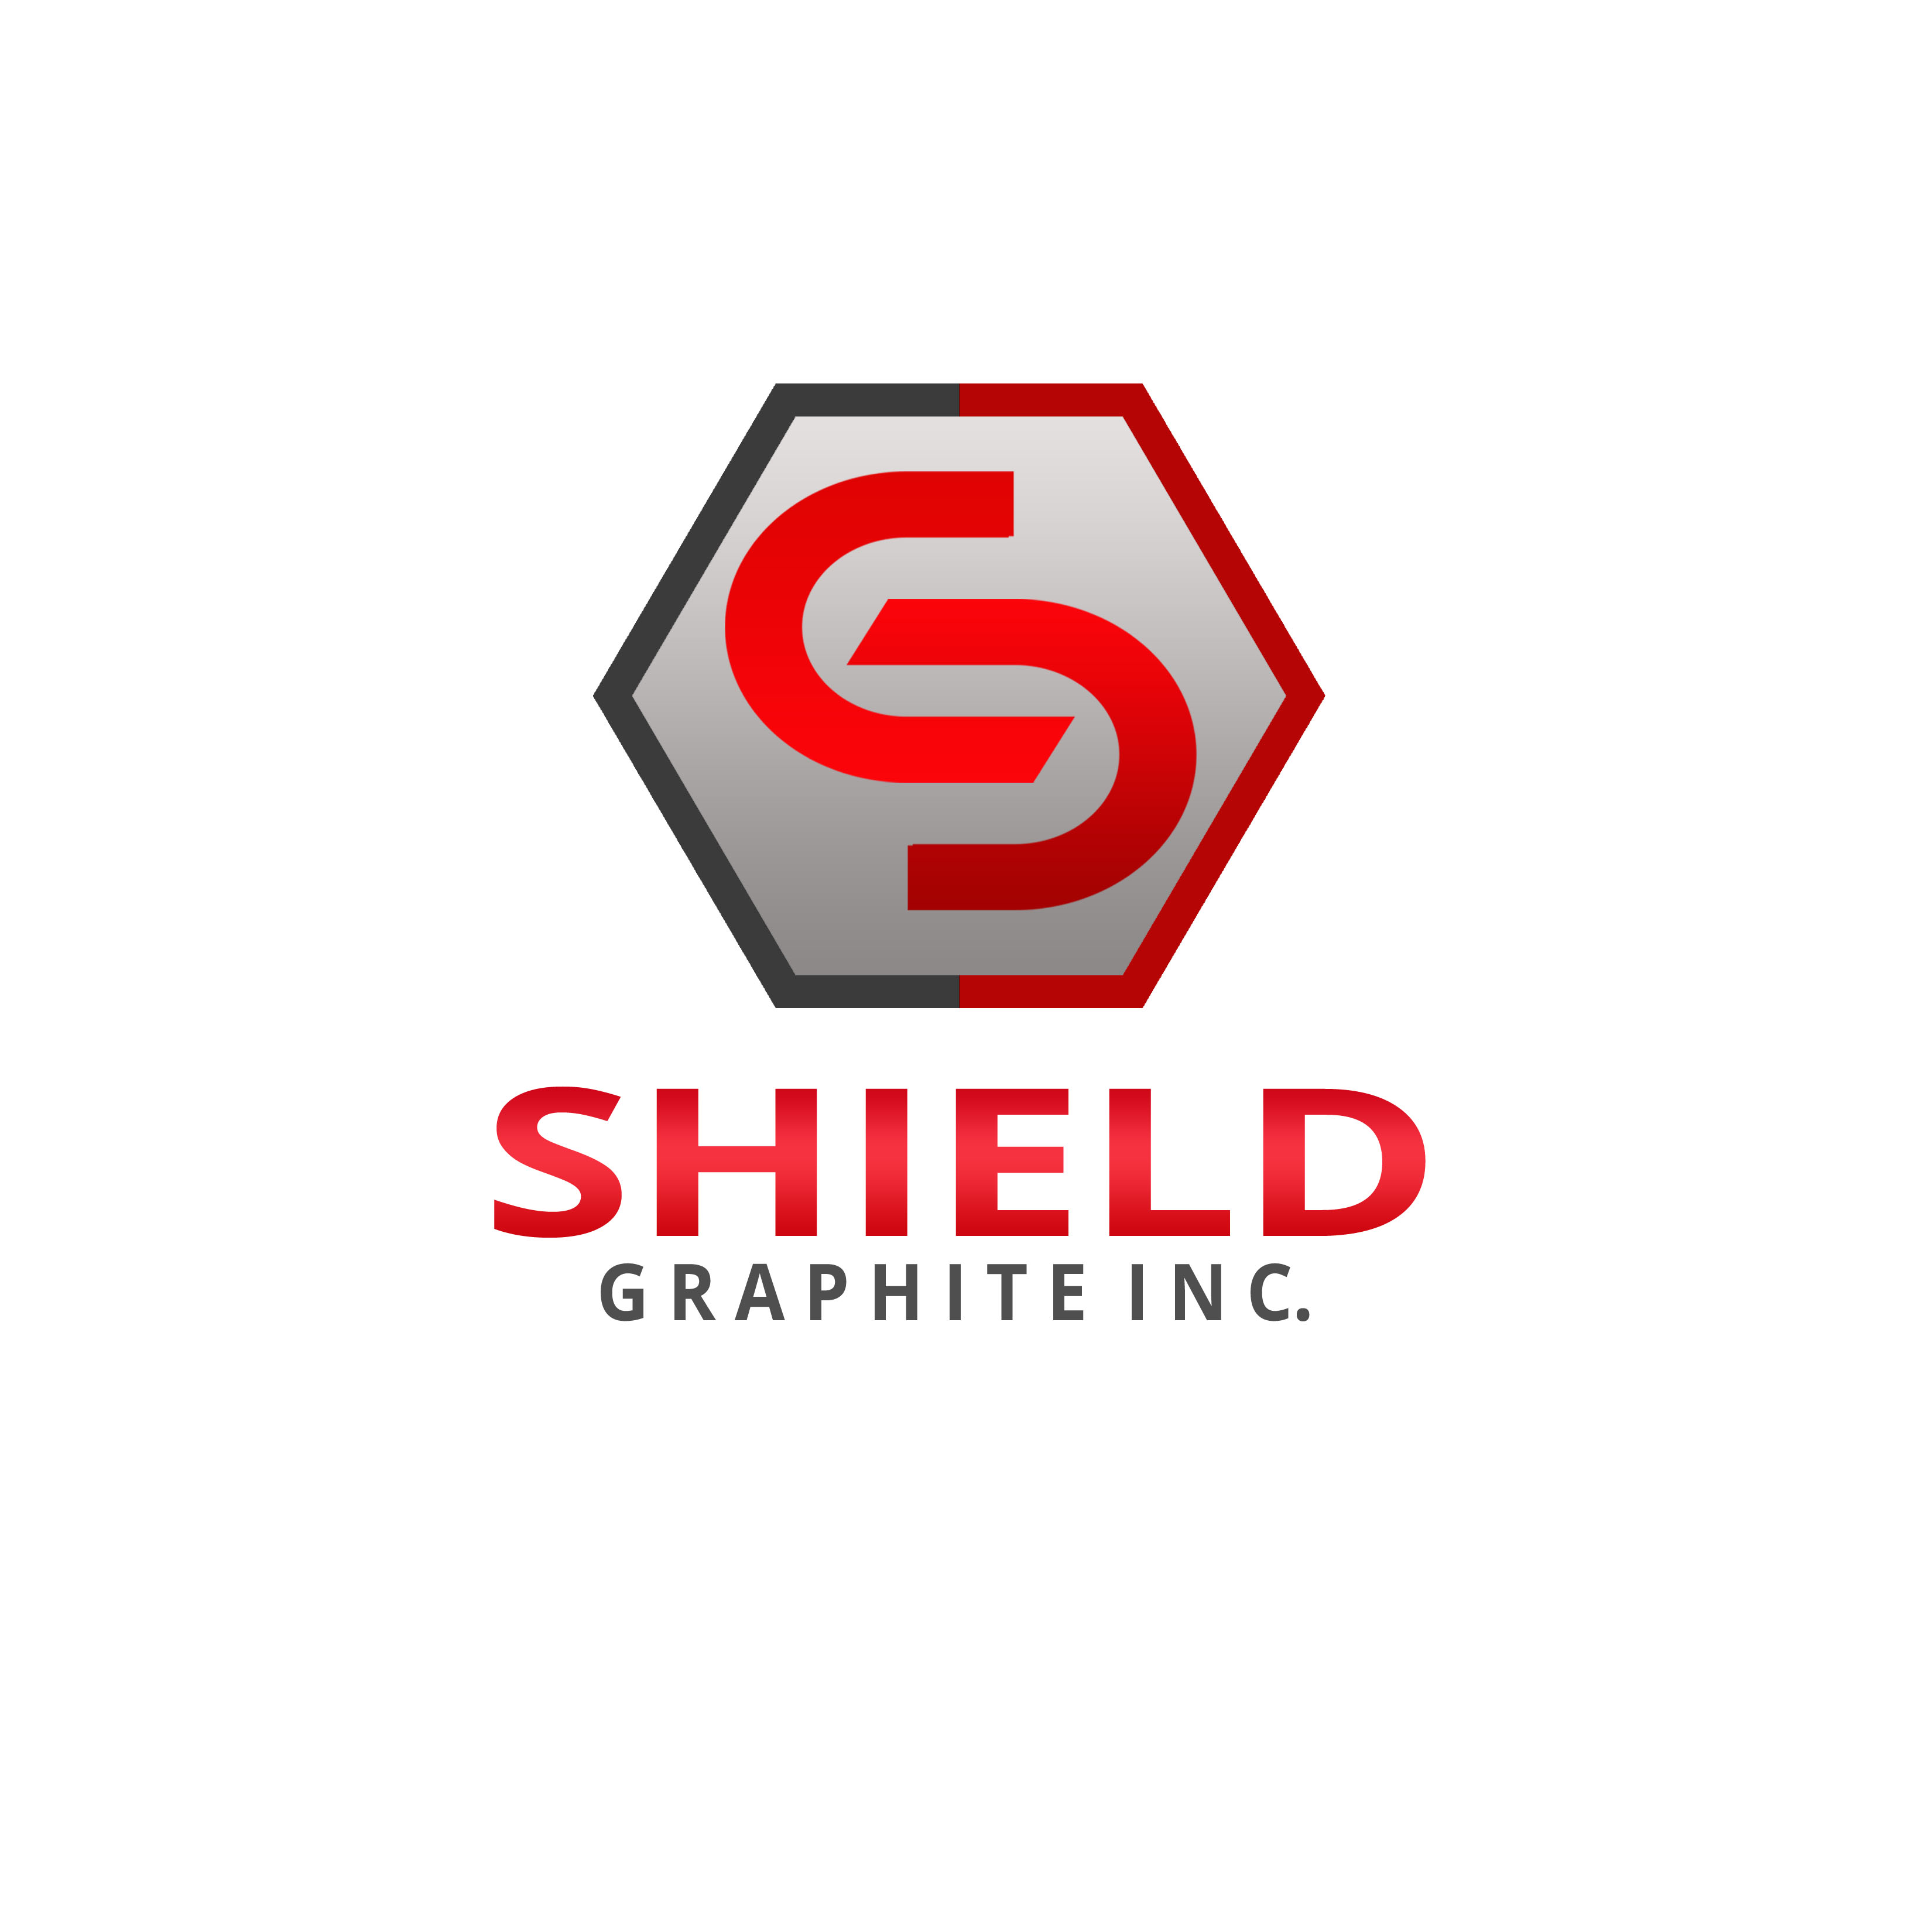 Logo Design by Allan Esclamado - Entry No. 139 in the Logo Design Contest Imaginative Logo Design for Shield Graphite Inc..